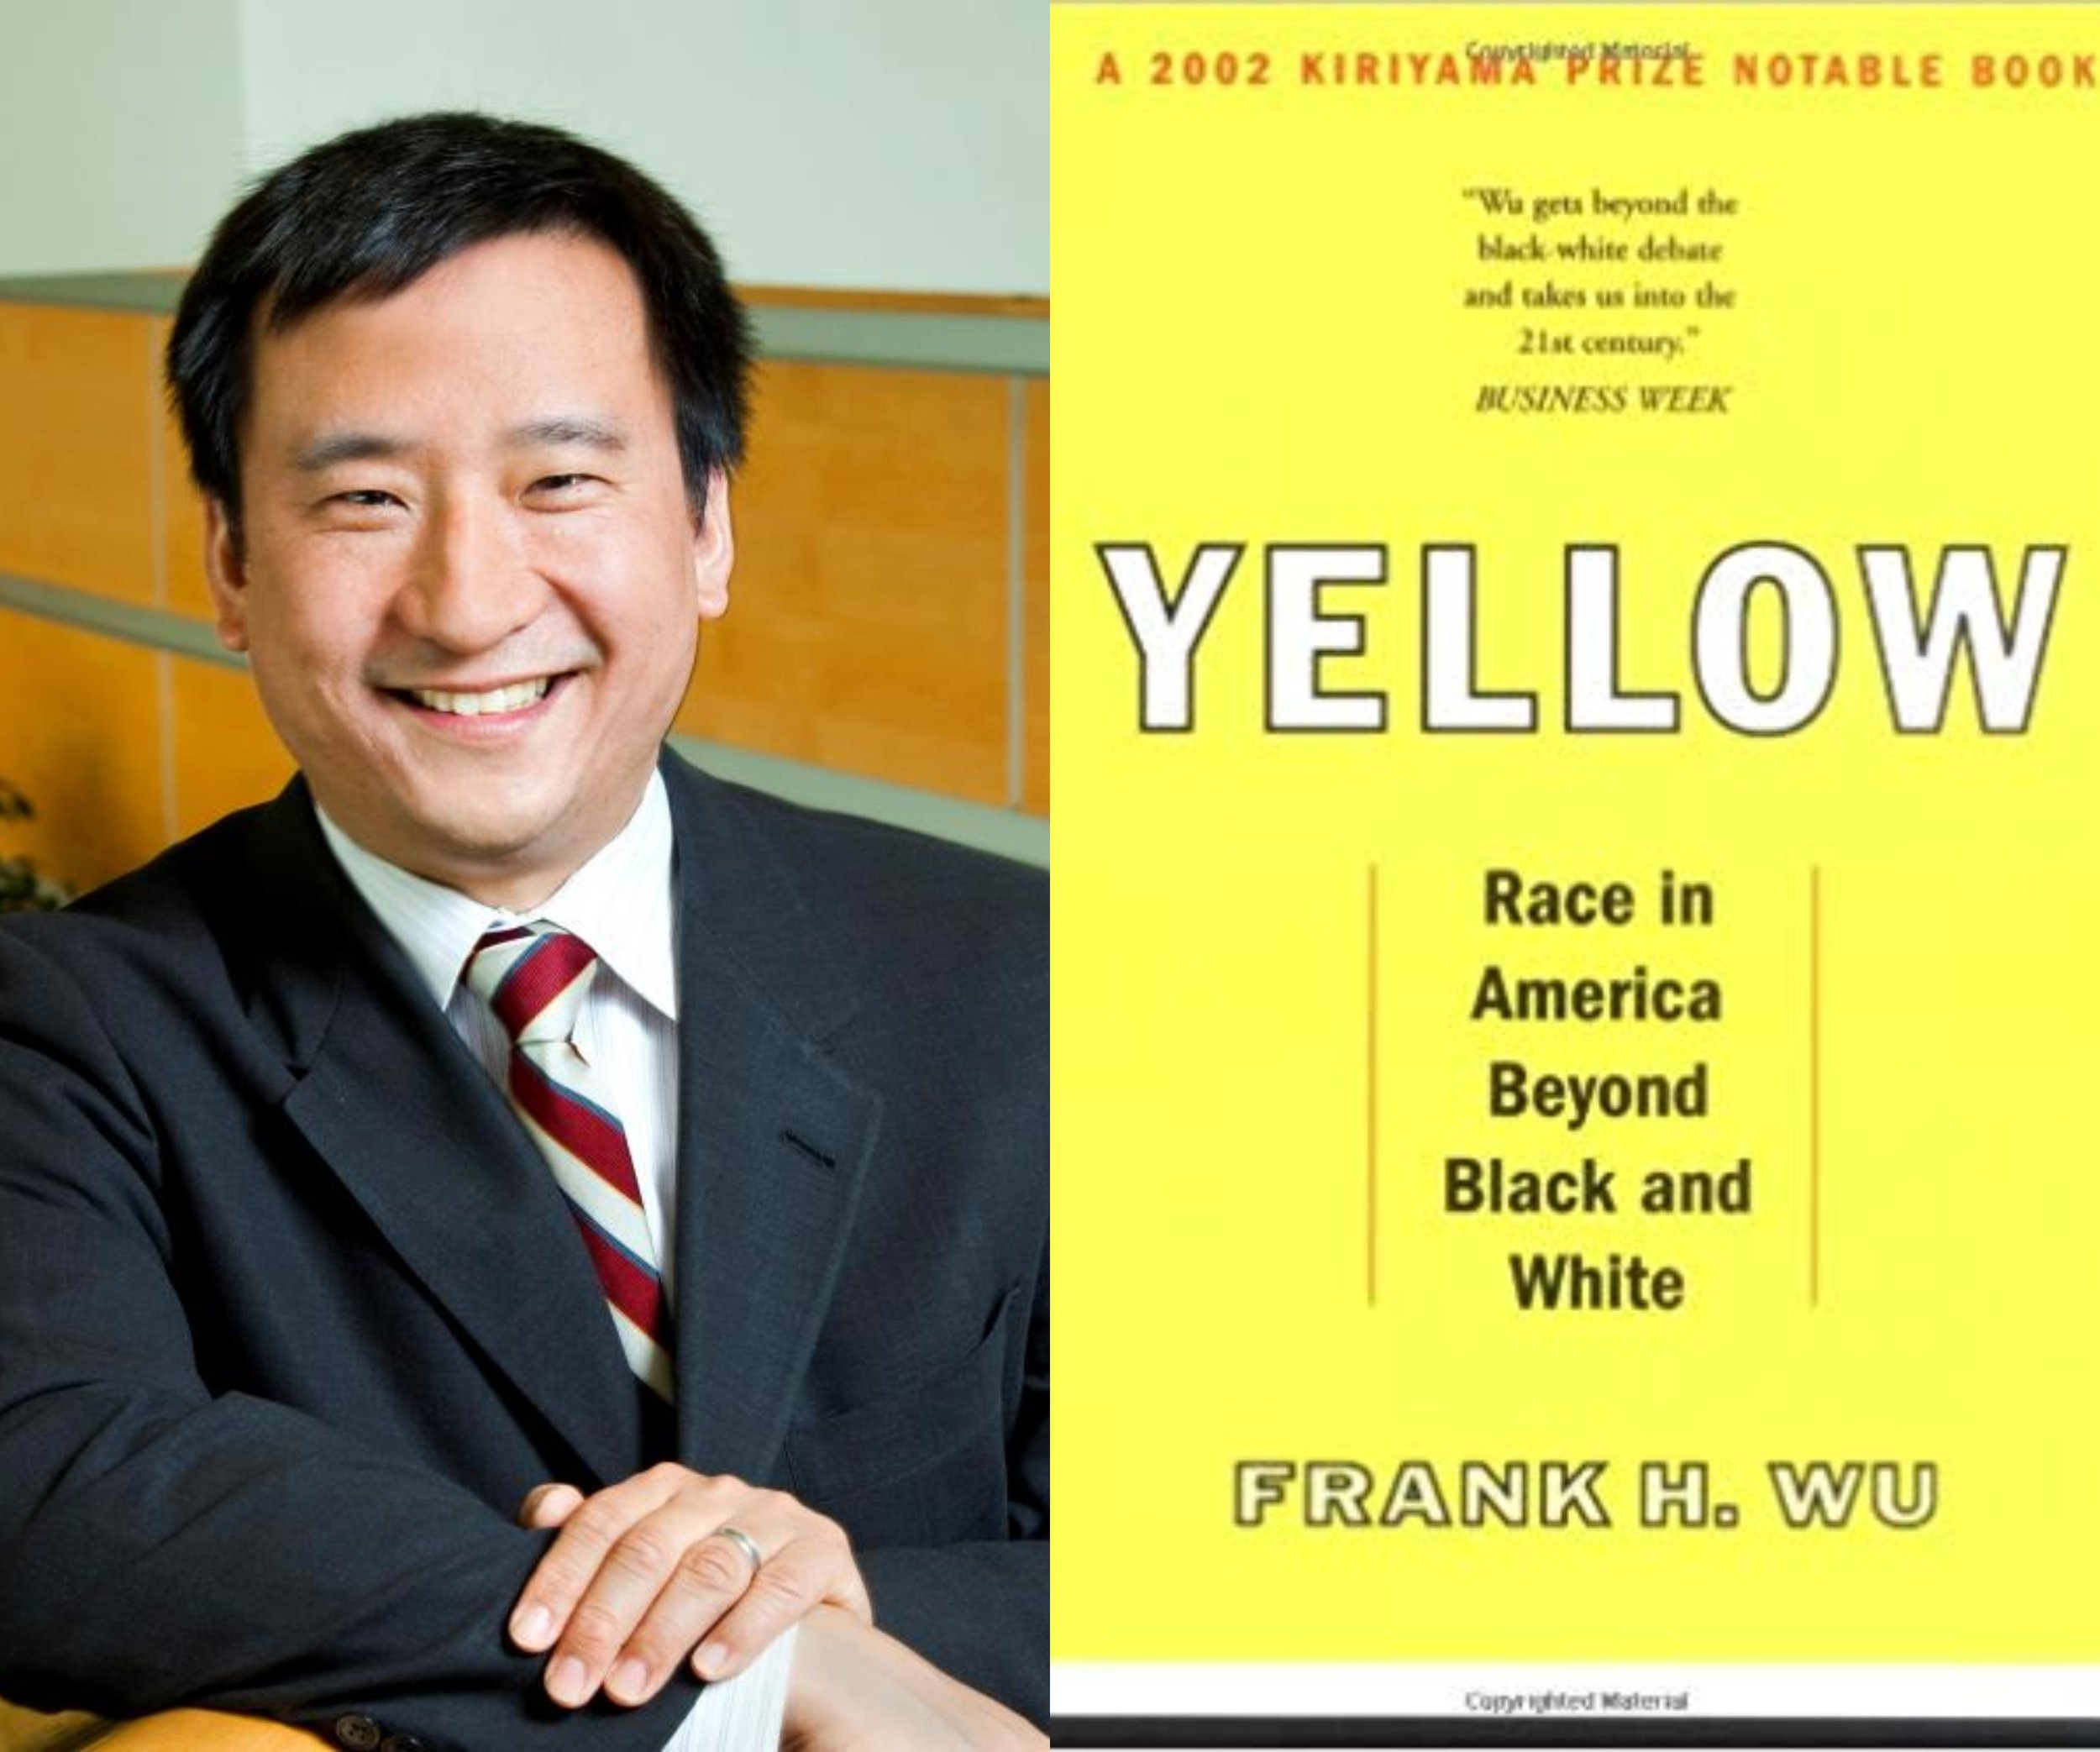 FREE SPEECH 40: Affirmative Action Under Attack: What's At Stake? With Frank Wu - With Frank Wu, UC Hastings College of Law:READ MORE